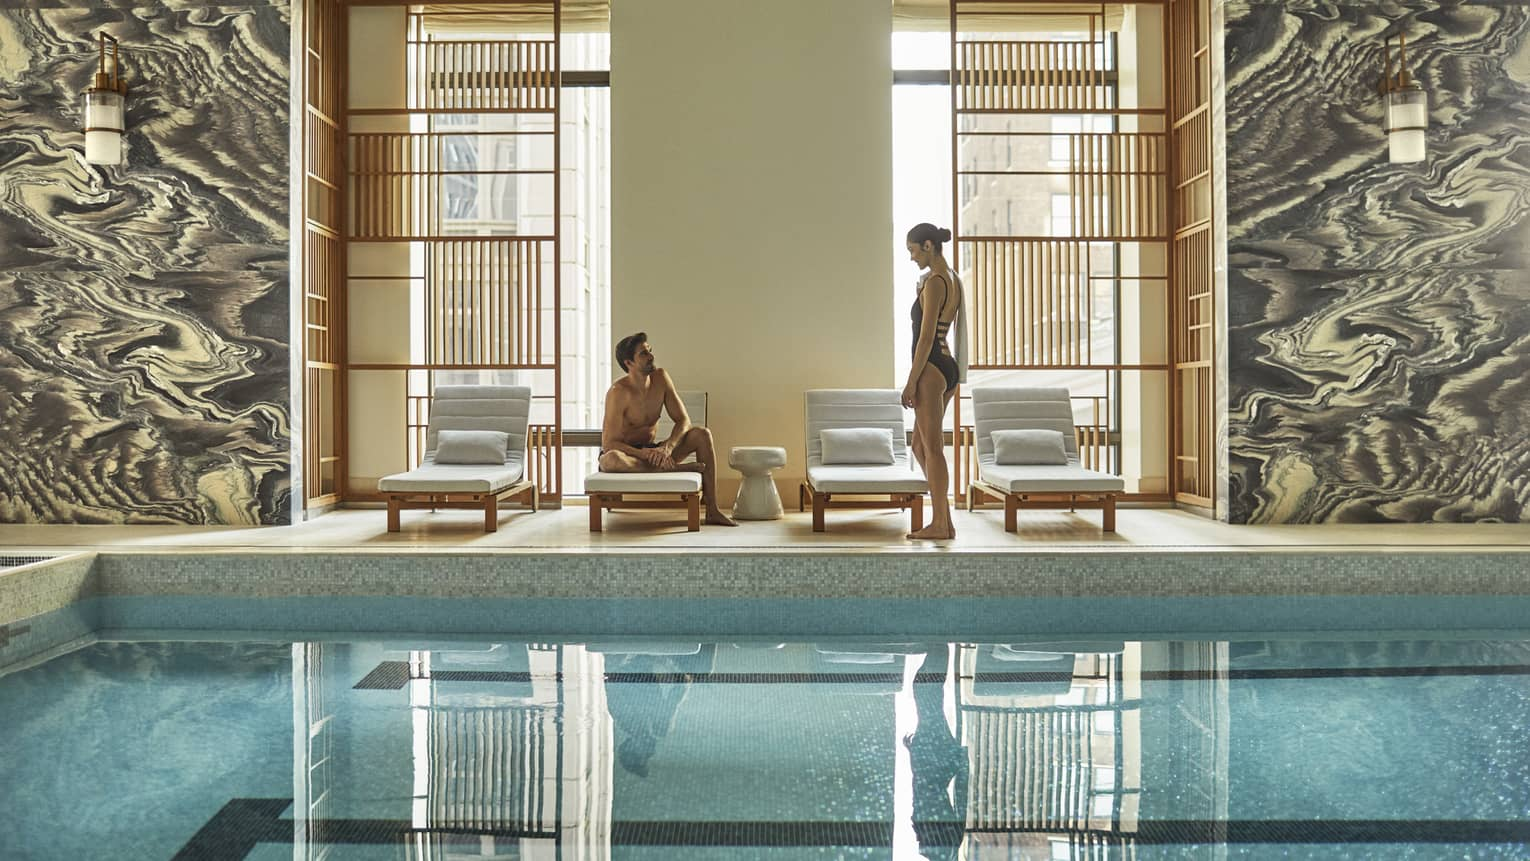 Man and woman in swimsuits by lounge chairs, window on indoor swimming pool deck